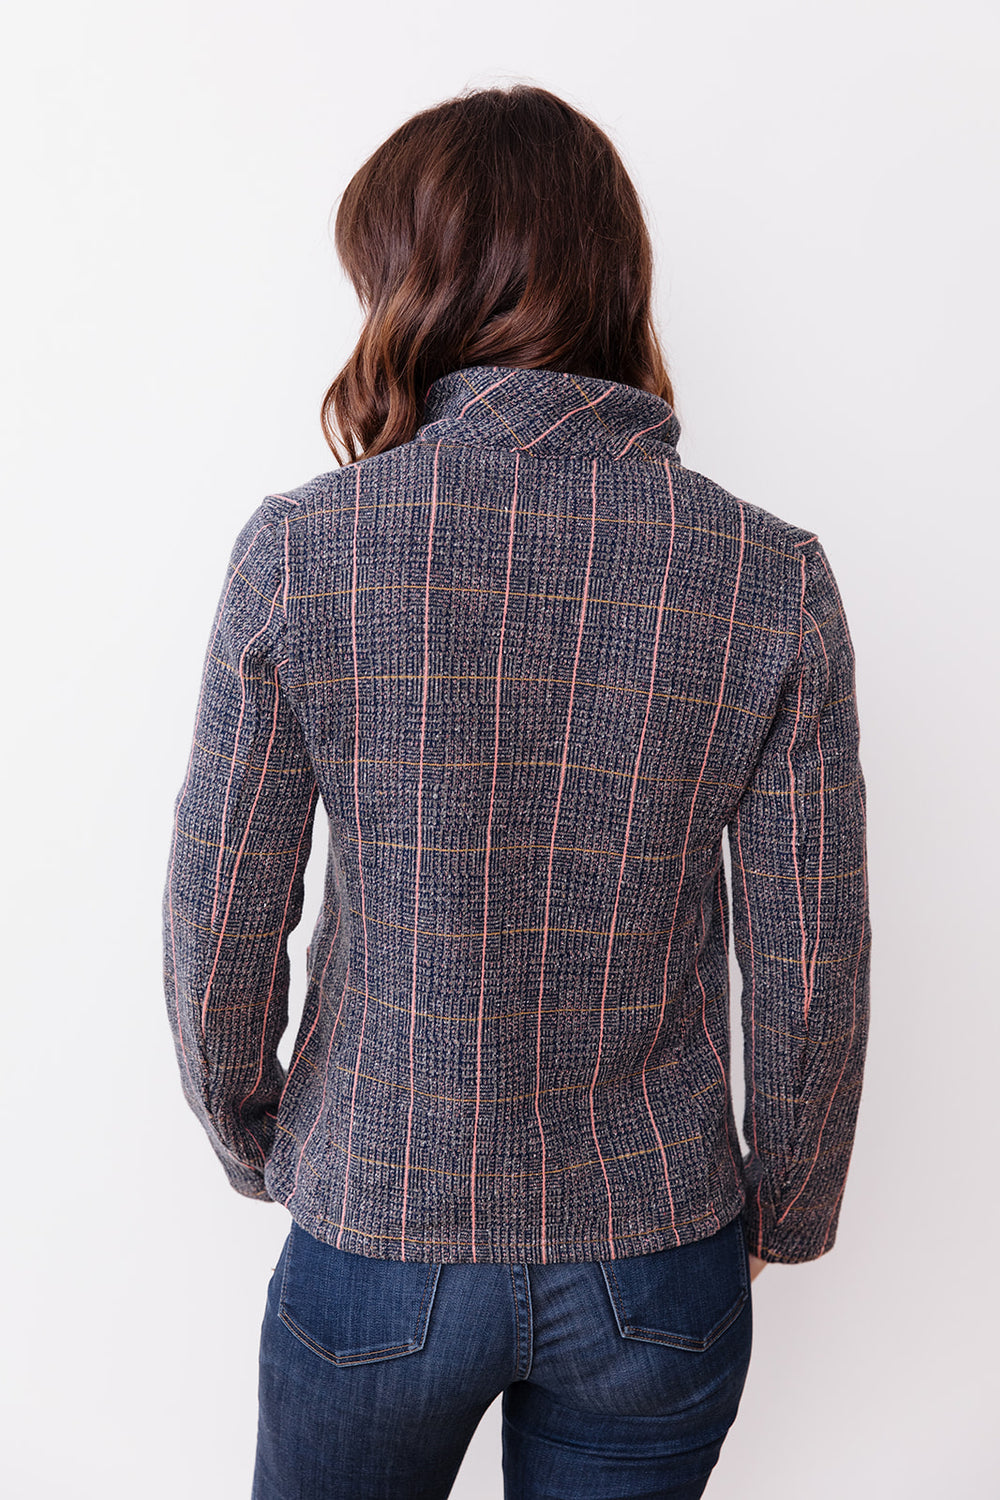 Tweed Fleecy Knit KOBE Jacket, Gray/Pink